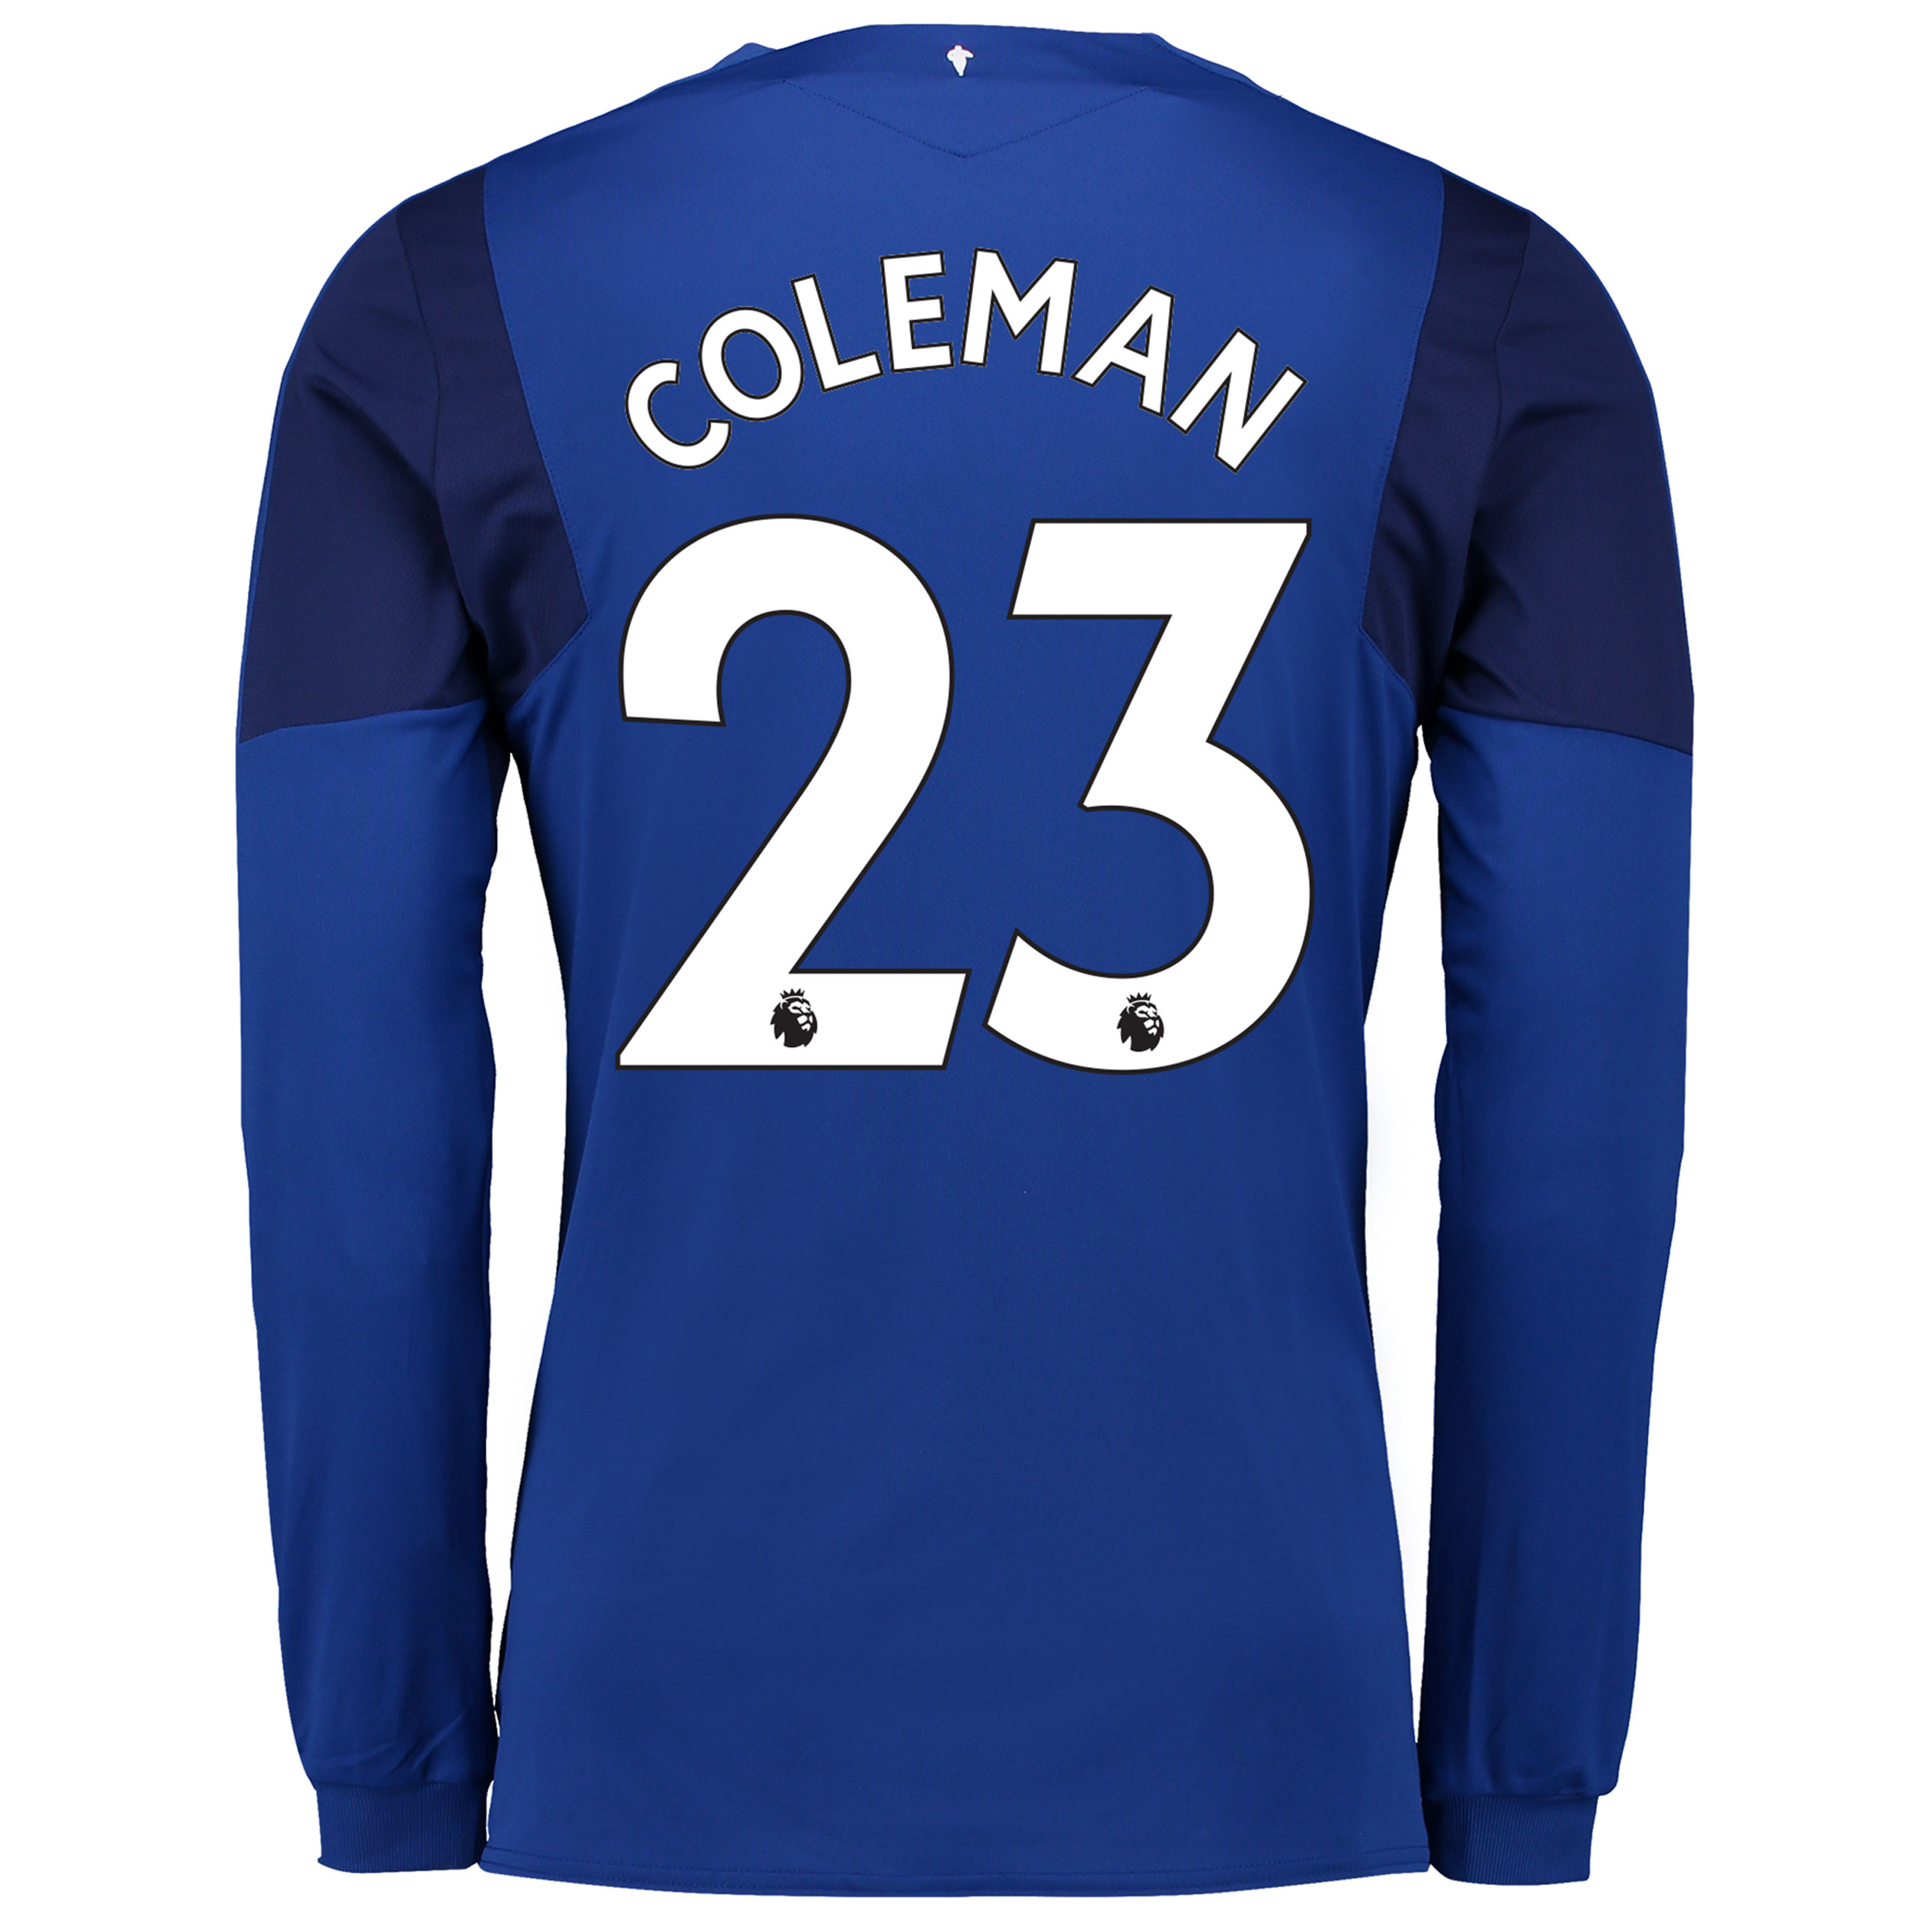 Everton Home Shirt 2017/18 - Junior - Long Sleeved with Coleman 23 pri